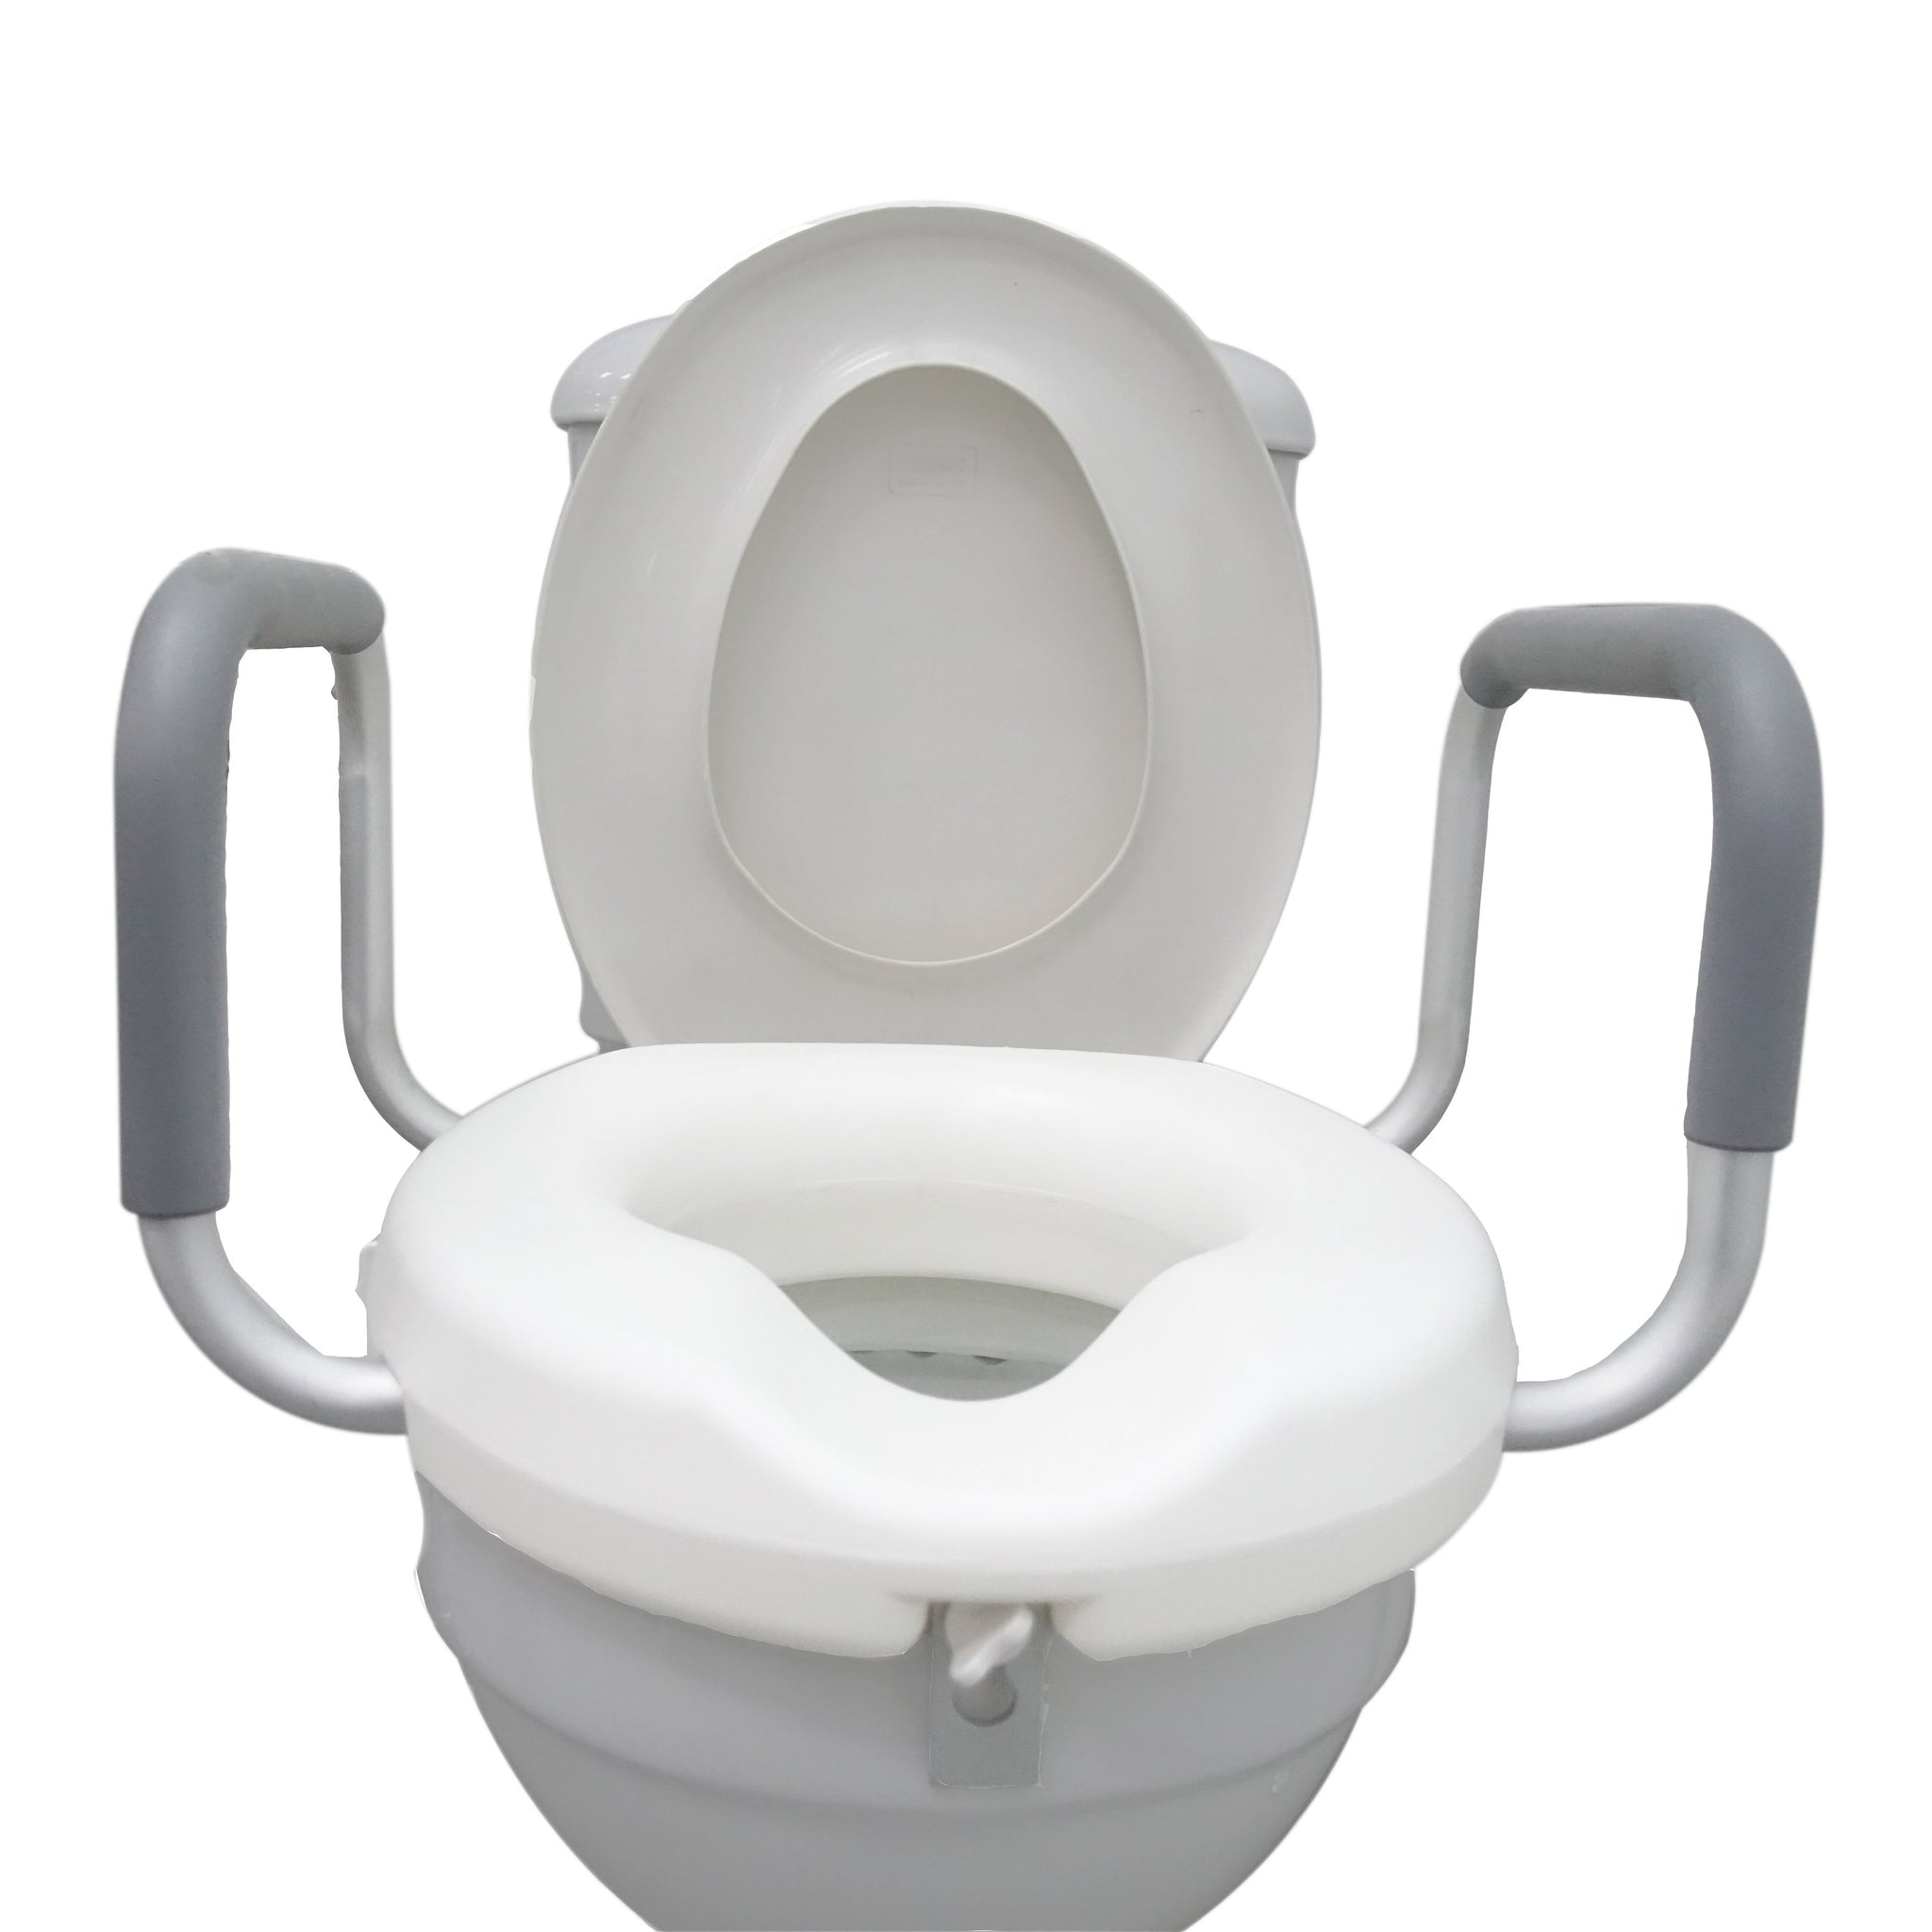 Raised Toilet Seat 3 With Handles The Golden Concepts